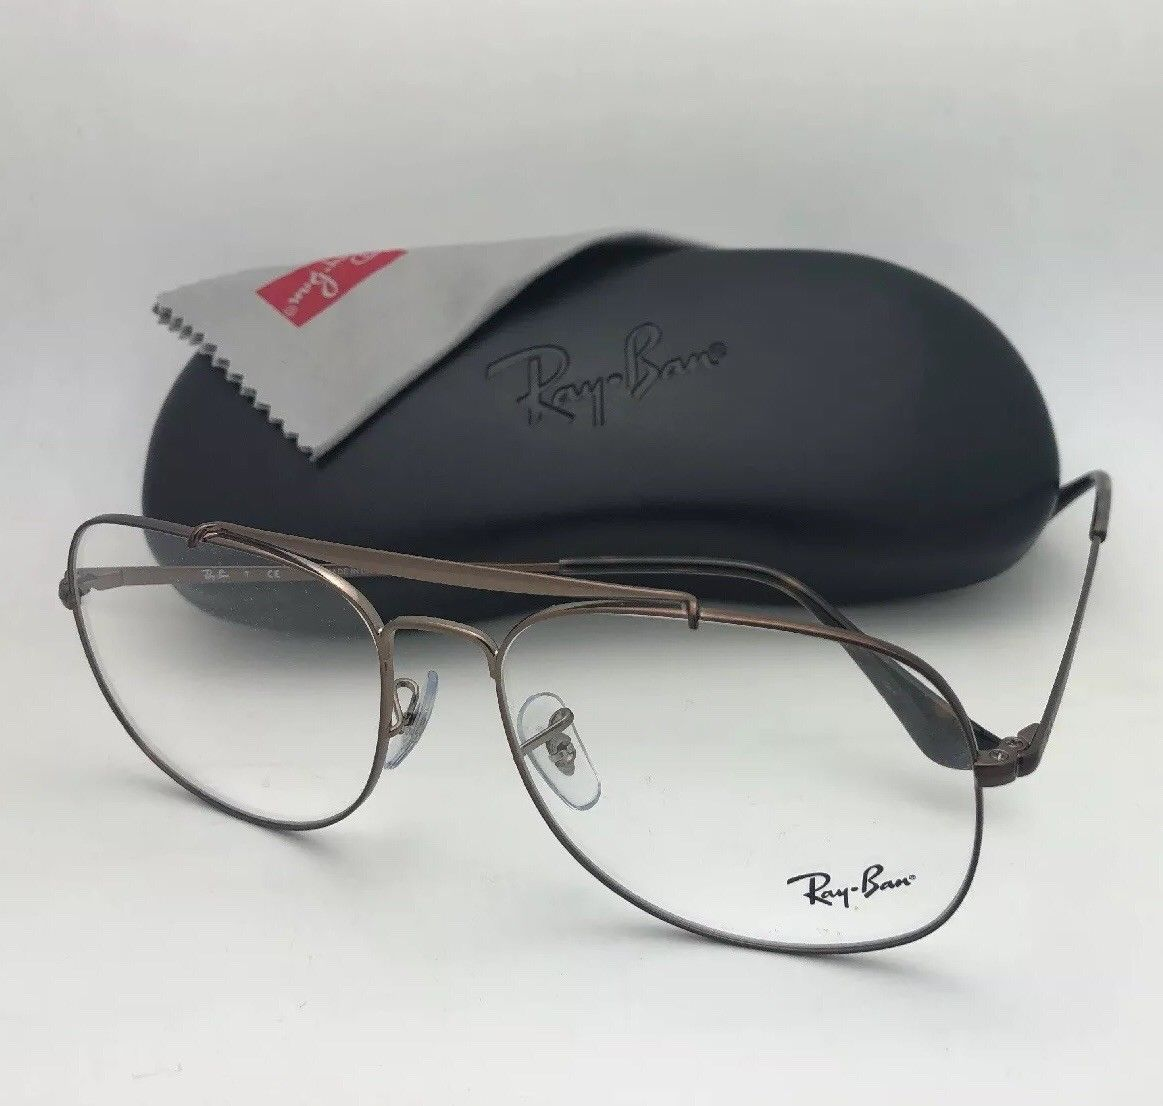 17301da9b0e New RAY-BAN Aviators Eyeglasses THE GENERAL RB 6389 2531 55-16 140 Brown  Frames -  169.99